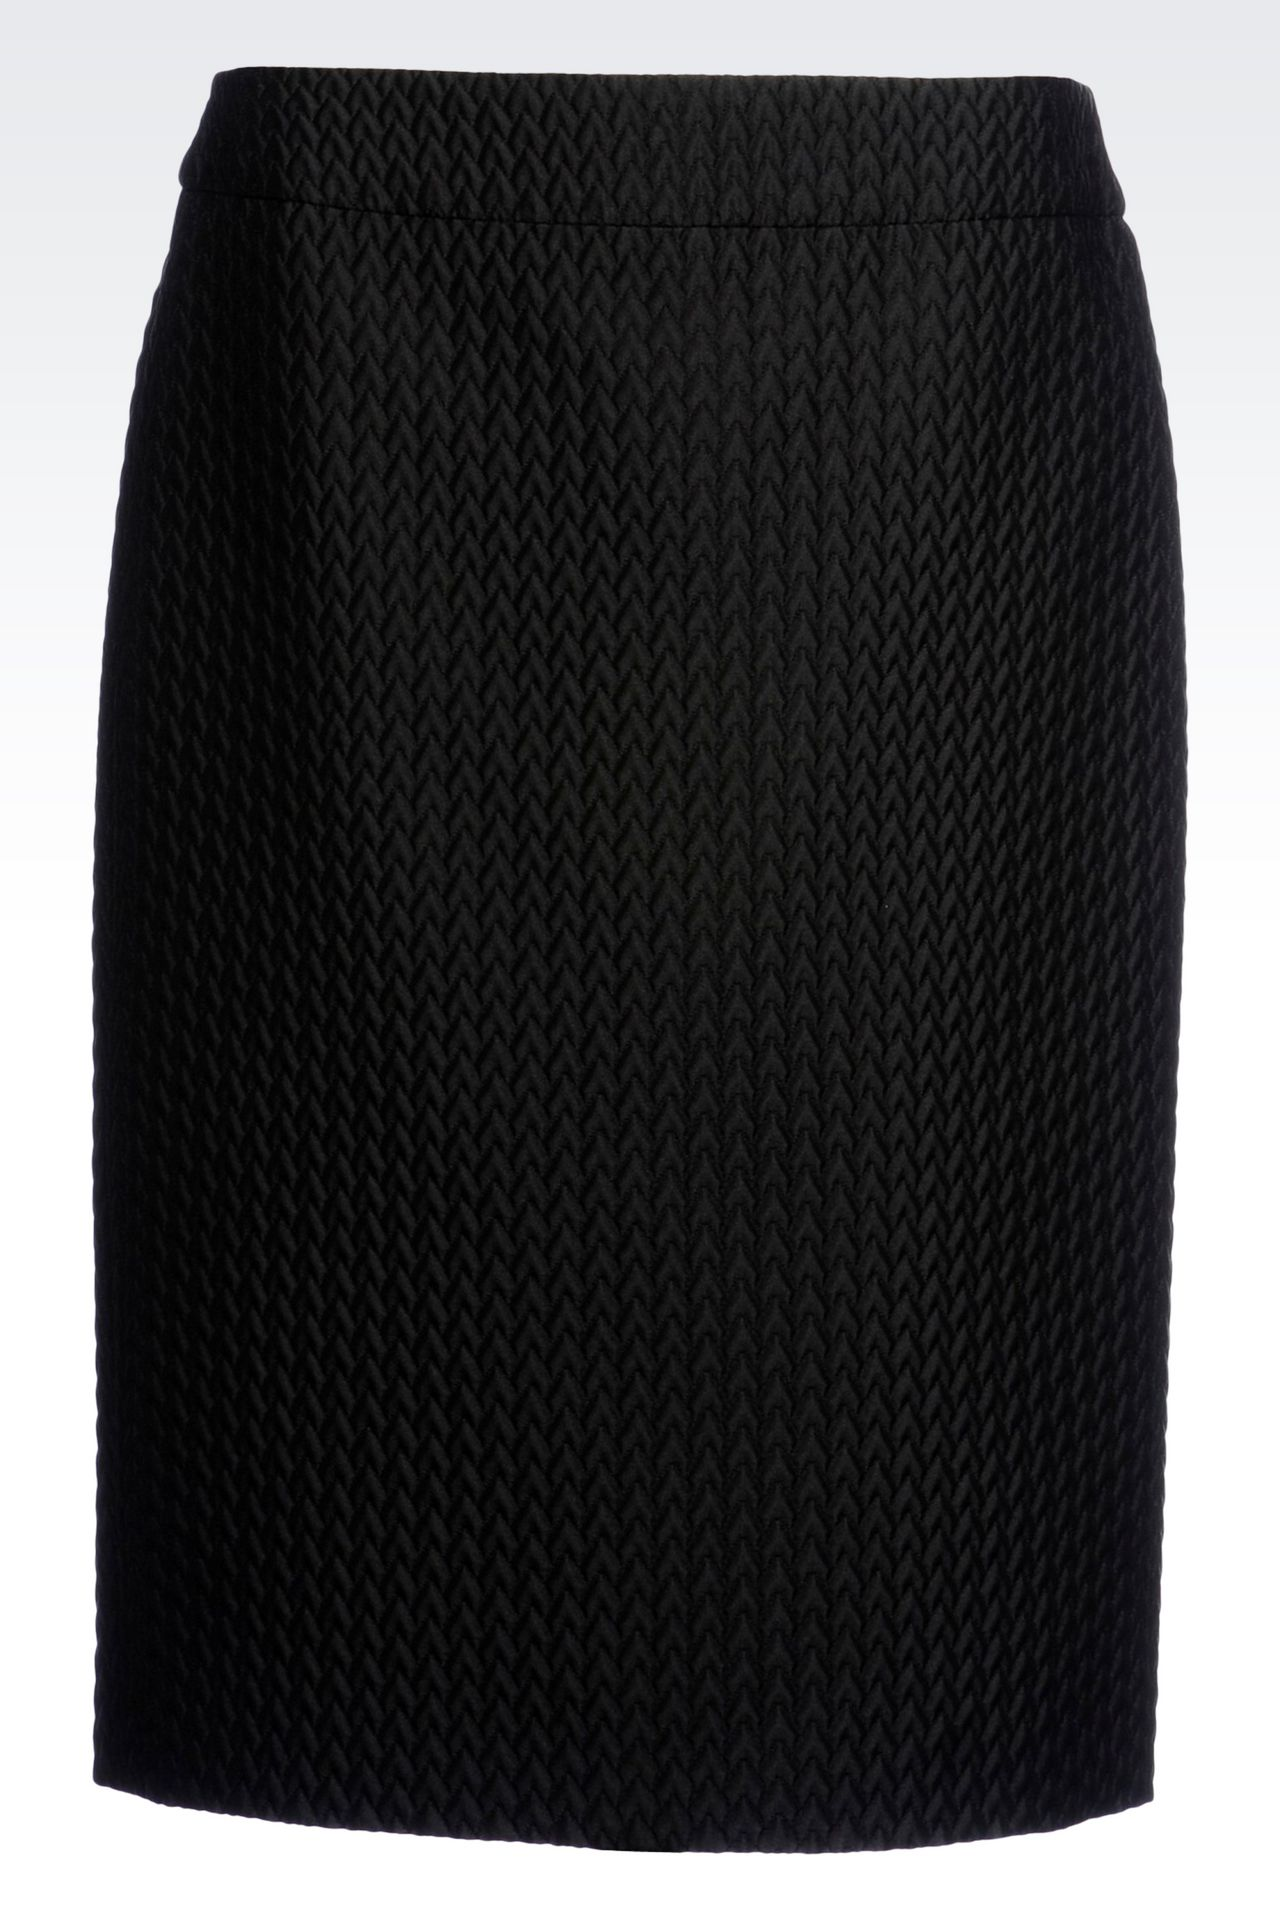 PENCIL SKIRT IN QUILTED JACQUARD: Knee length skirts Women by Armani - 0